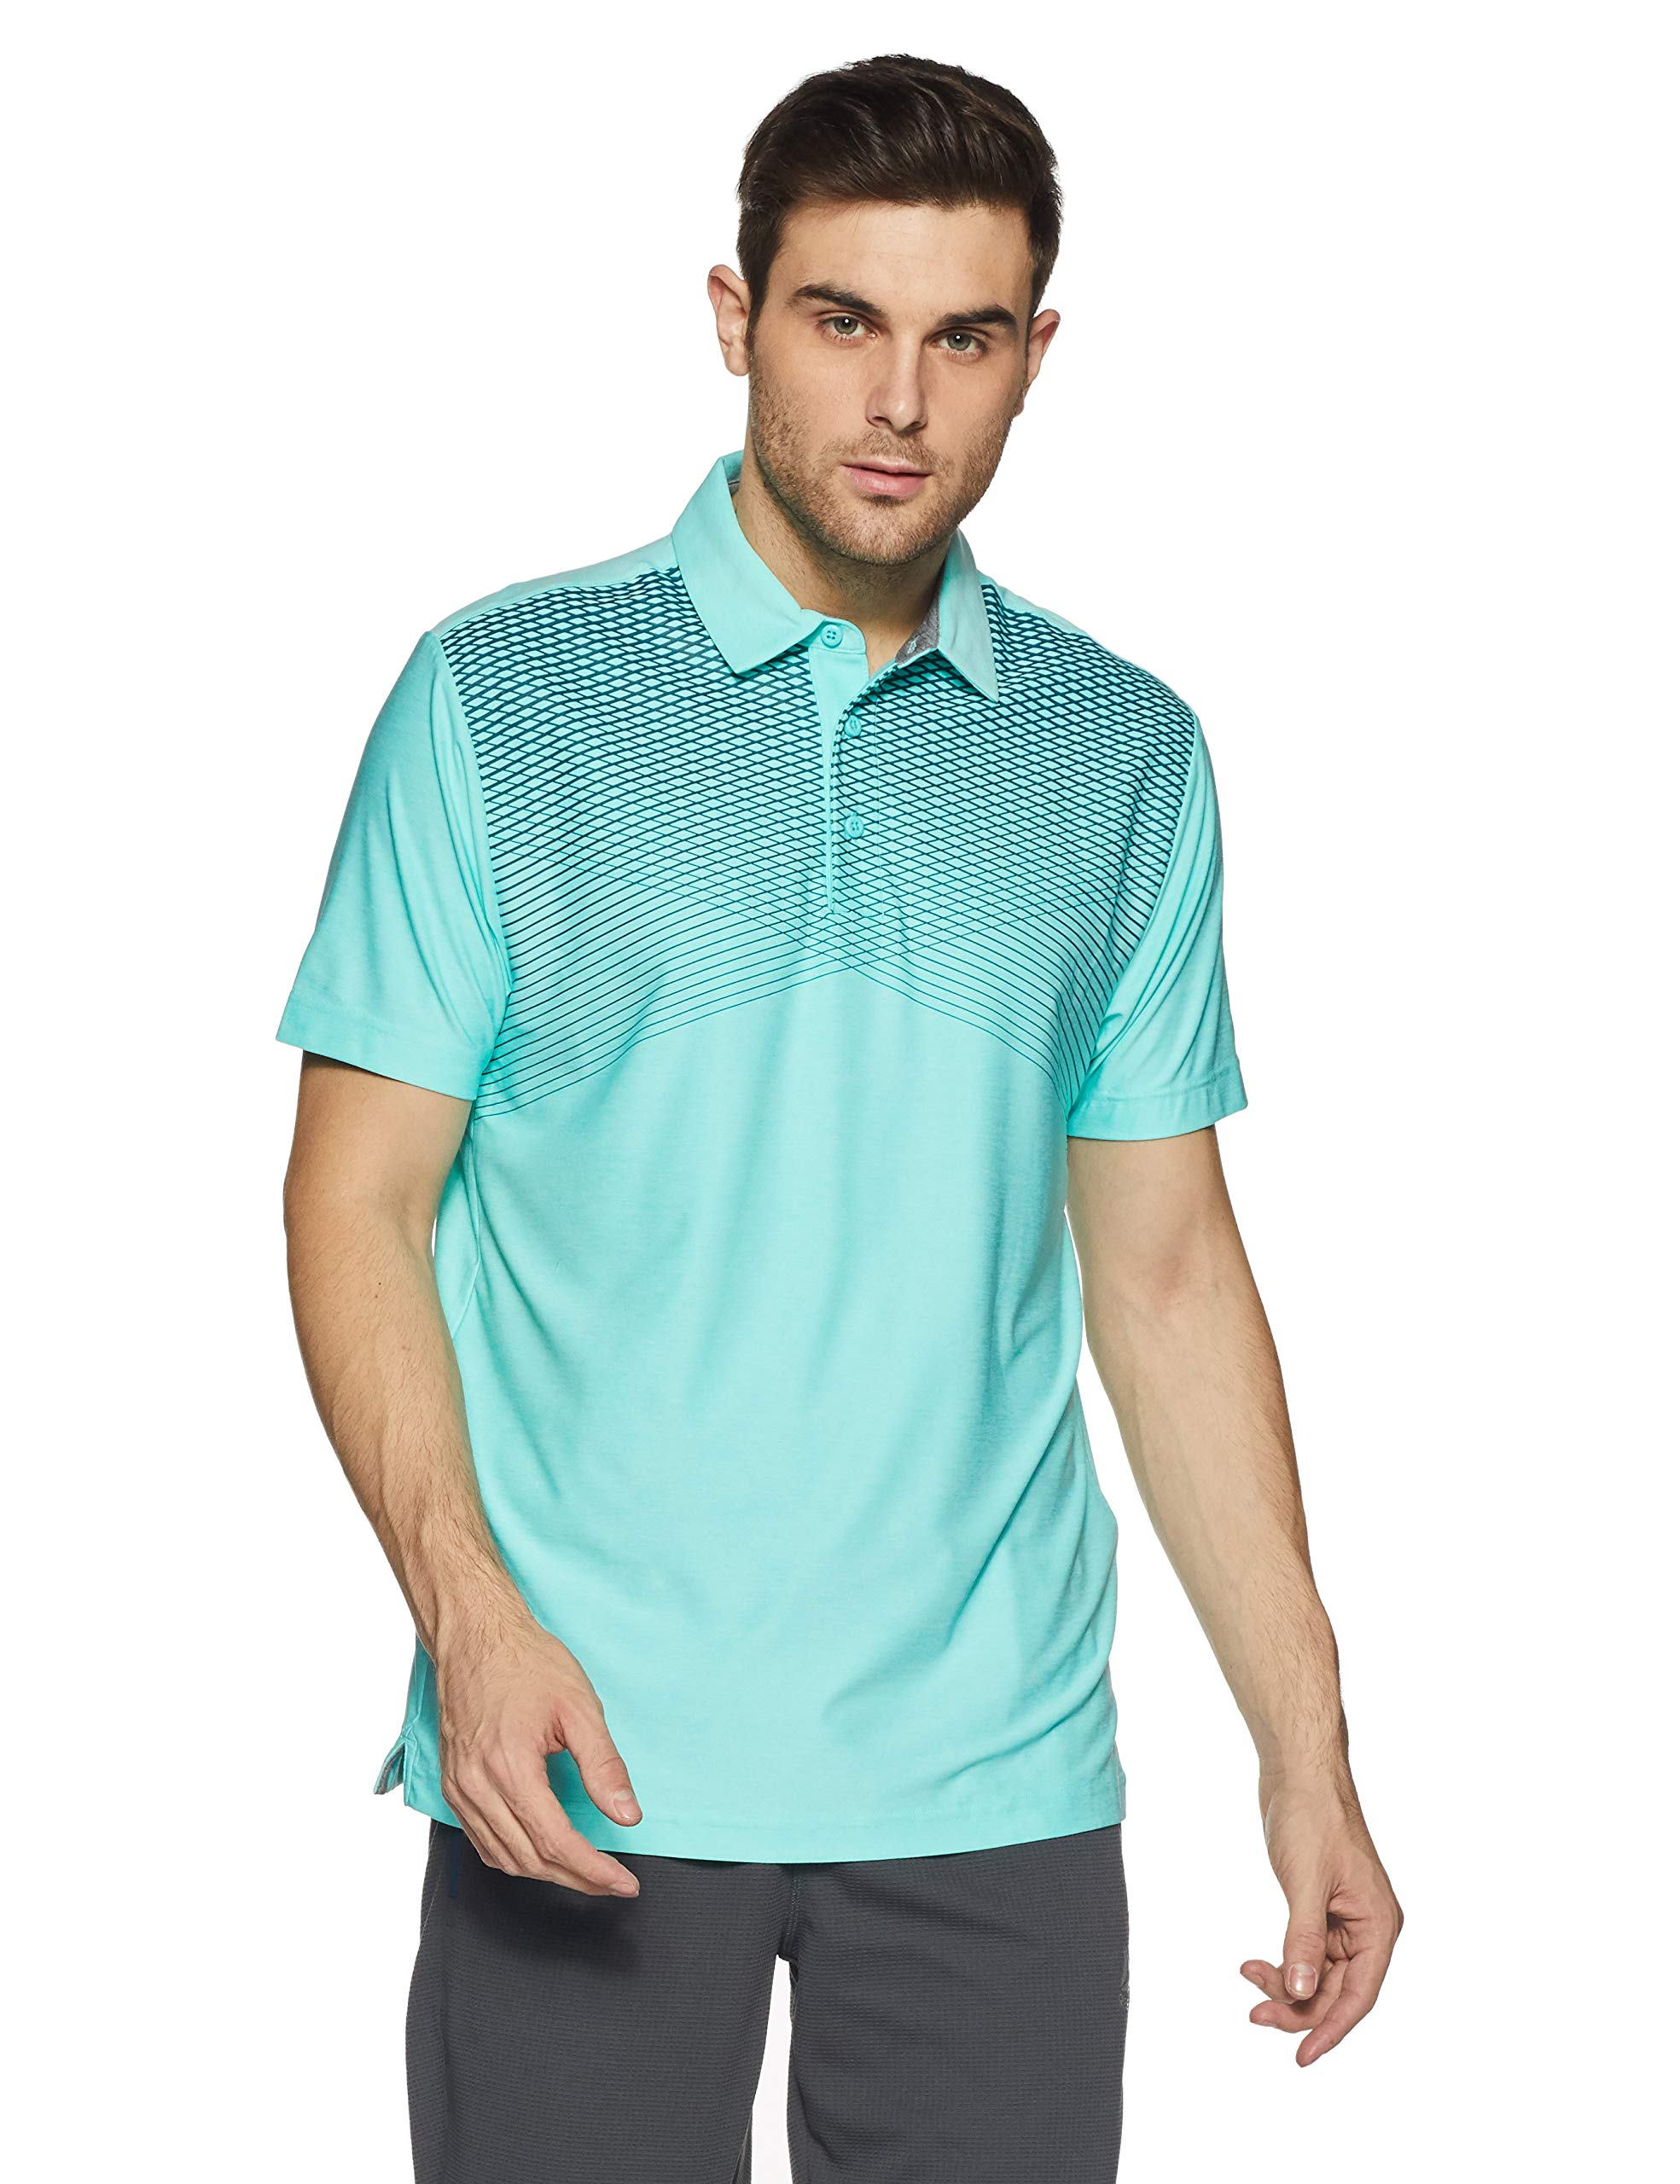 Under Armour Men's Playoff Polo, Tropical Tide (435)/Rhino Gray, X-Small